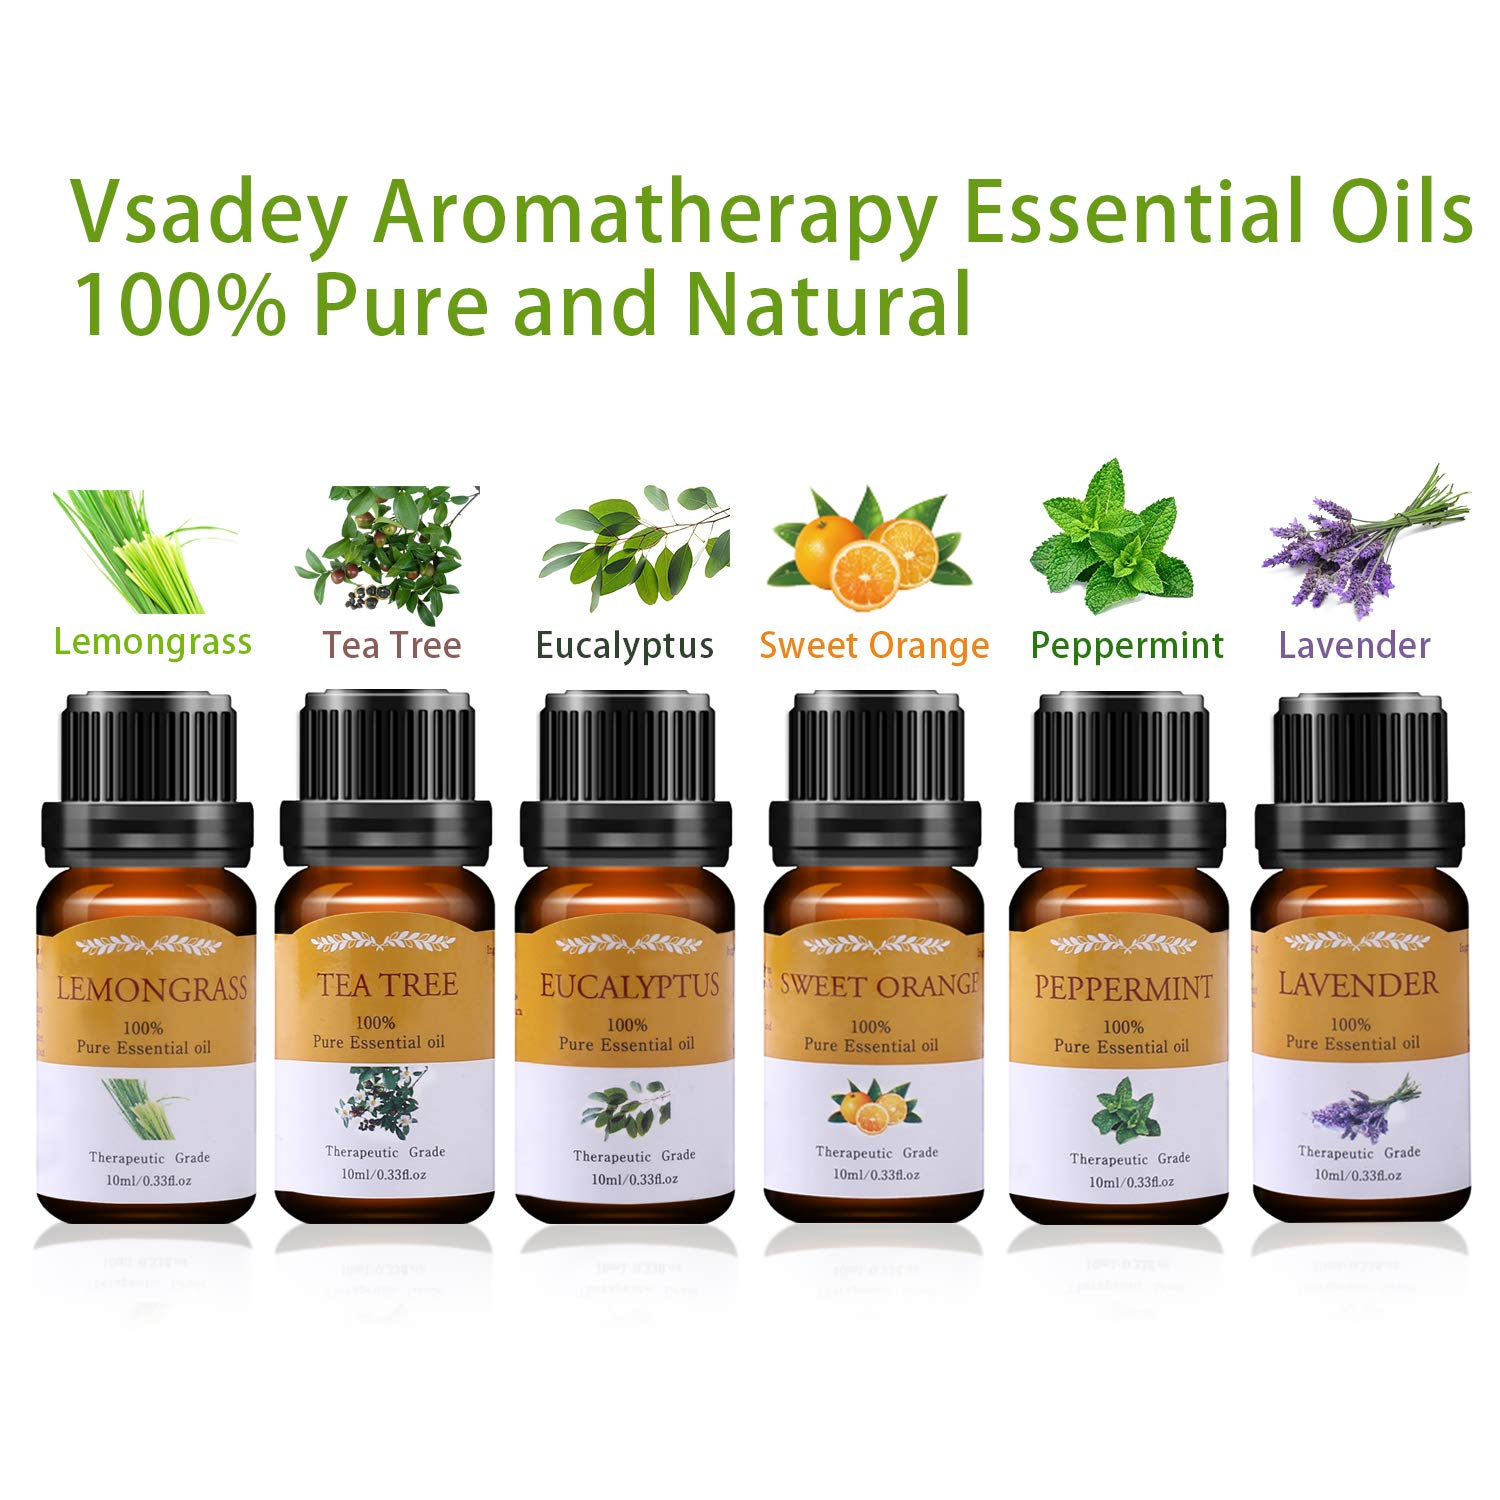 VSADEY Top 6 Essential Oils Organic Set, Therapeutic Grade 100% Pure Aromatherapy Anxiety Relief Diffuser Oils Gift Blends 6/10ml (Lavender, Sweet Orange, Peppermint, Lemongrass, Tea Tree, Eucalyptus)